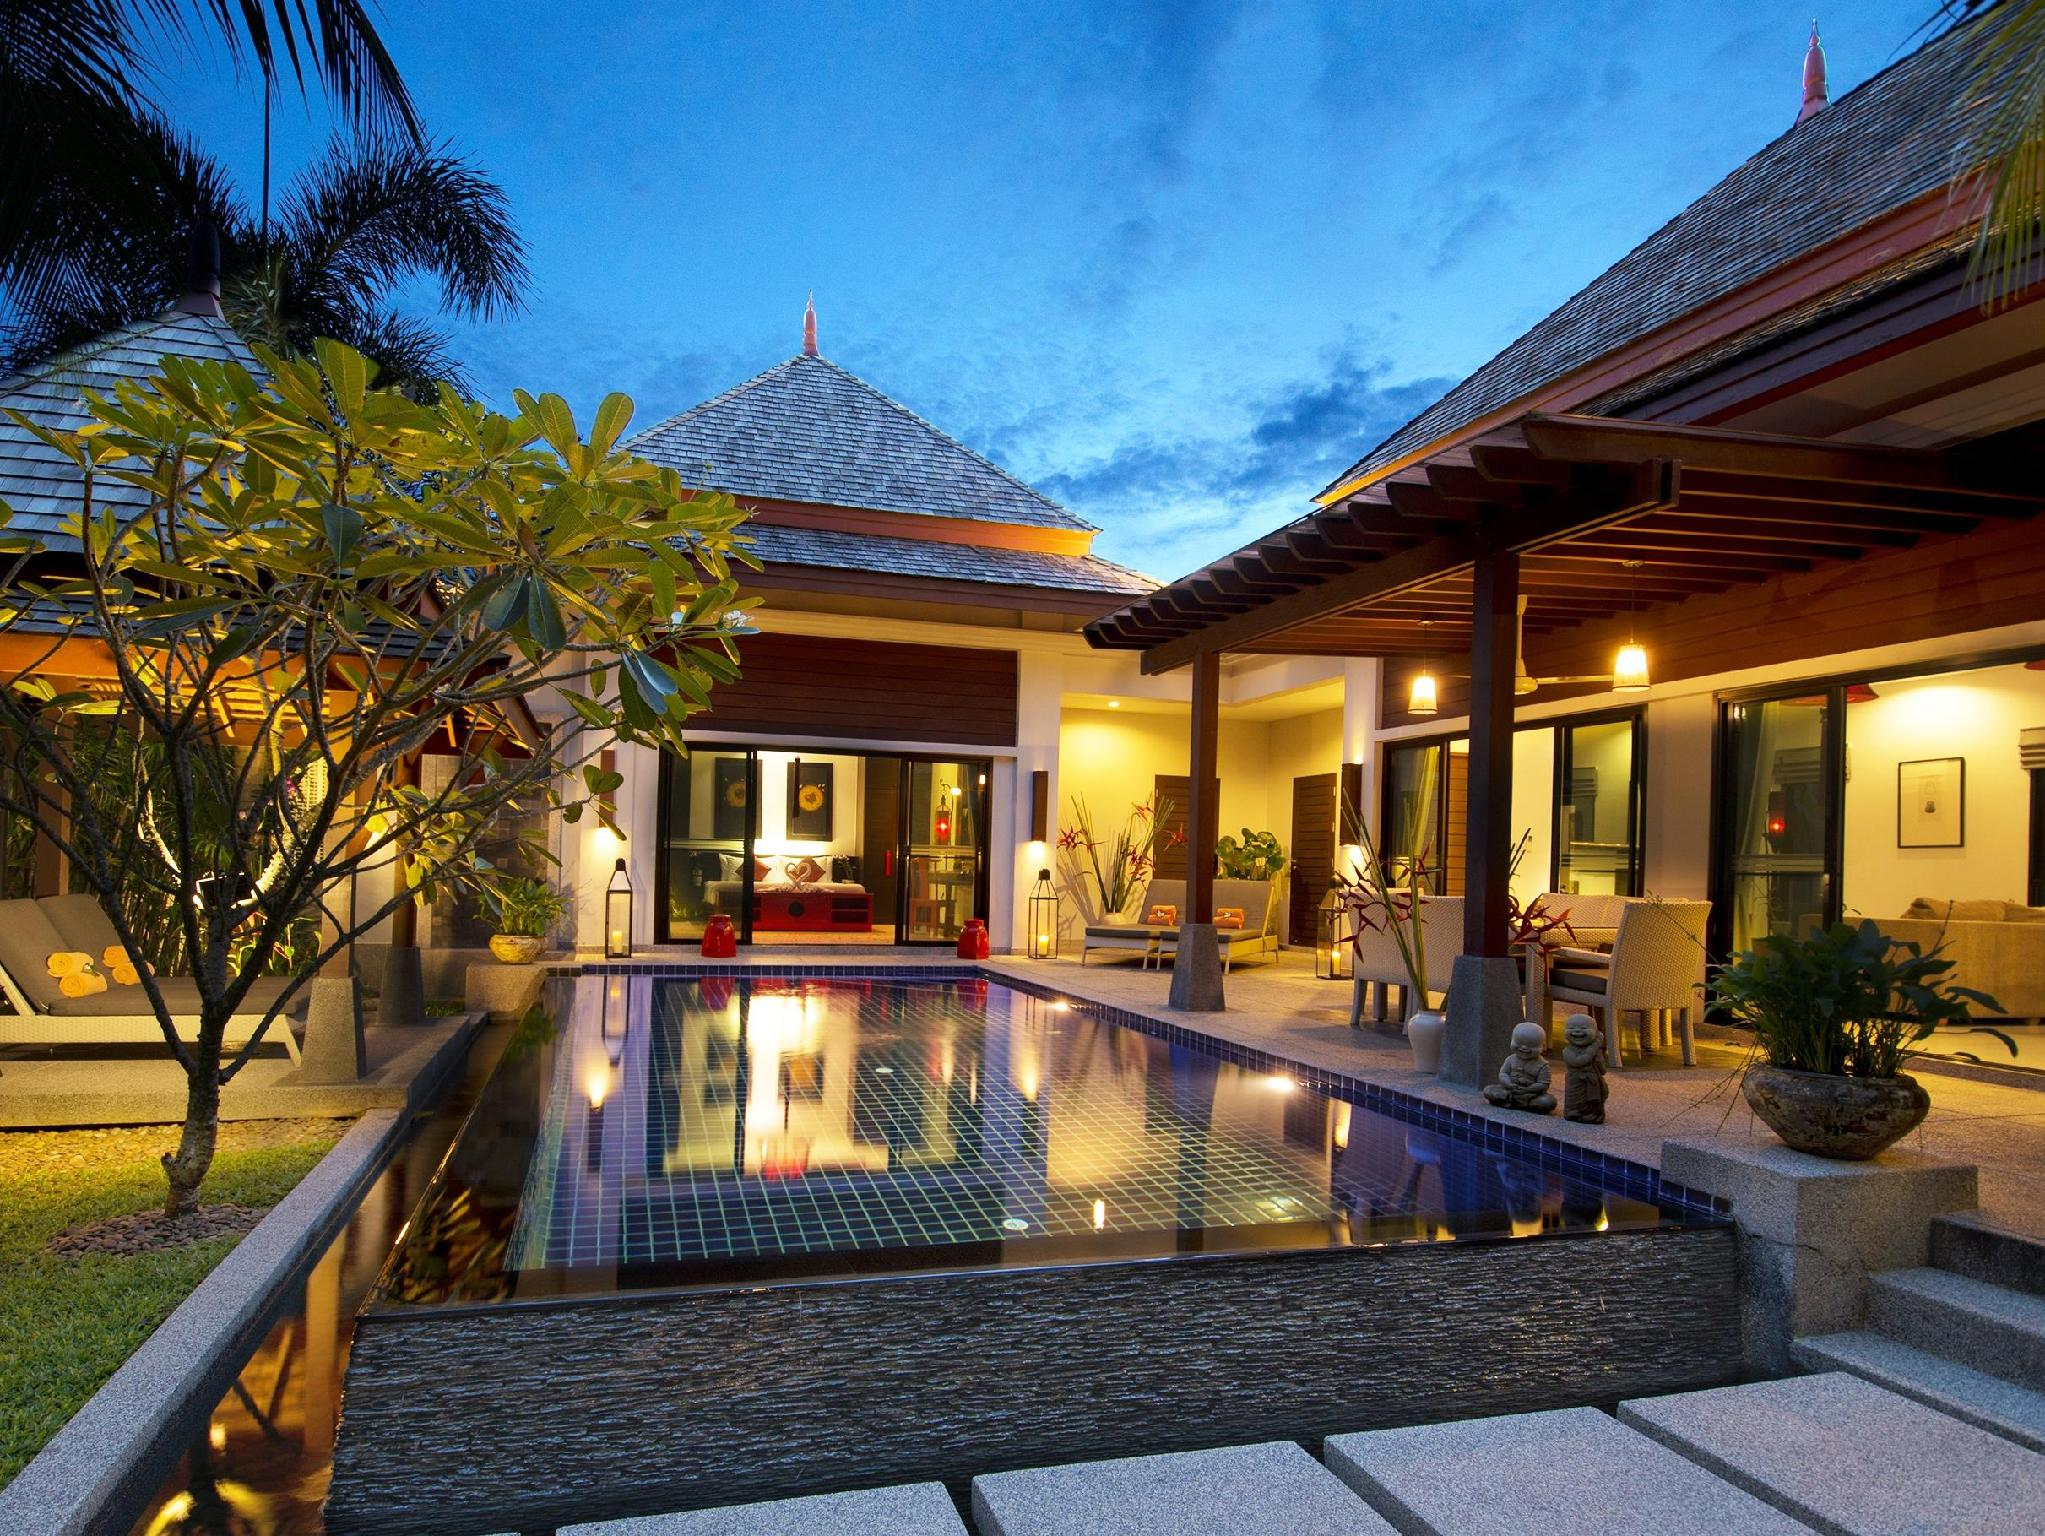 The Bell Pool Villa Resort Phuket Πουκέτ